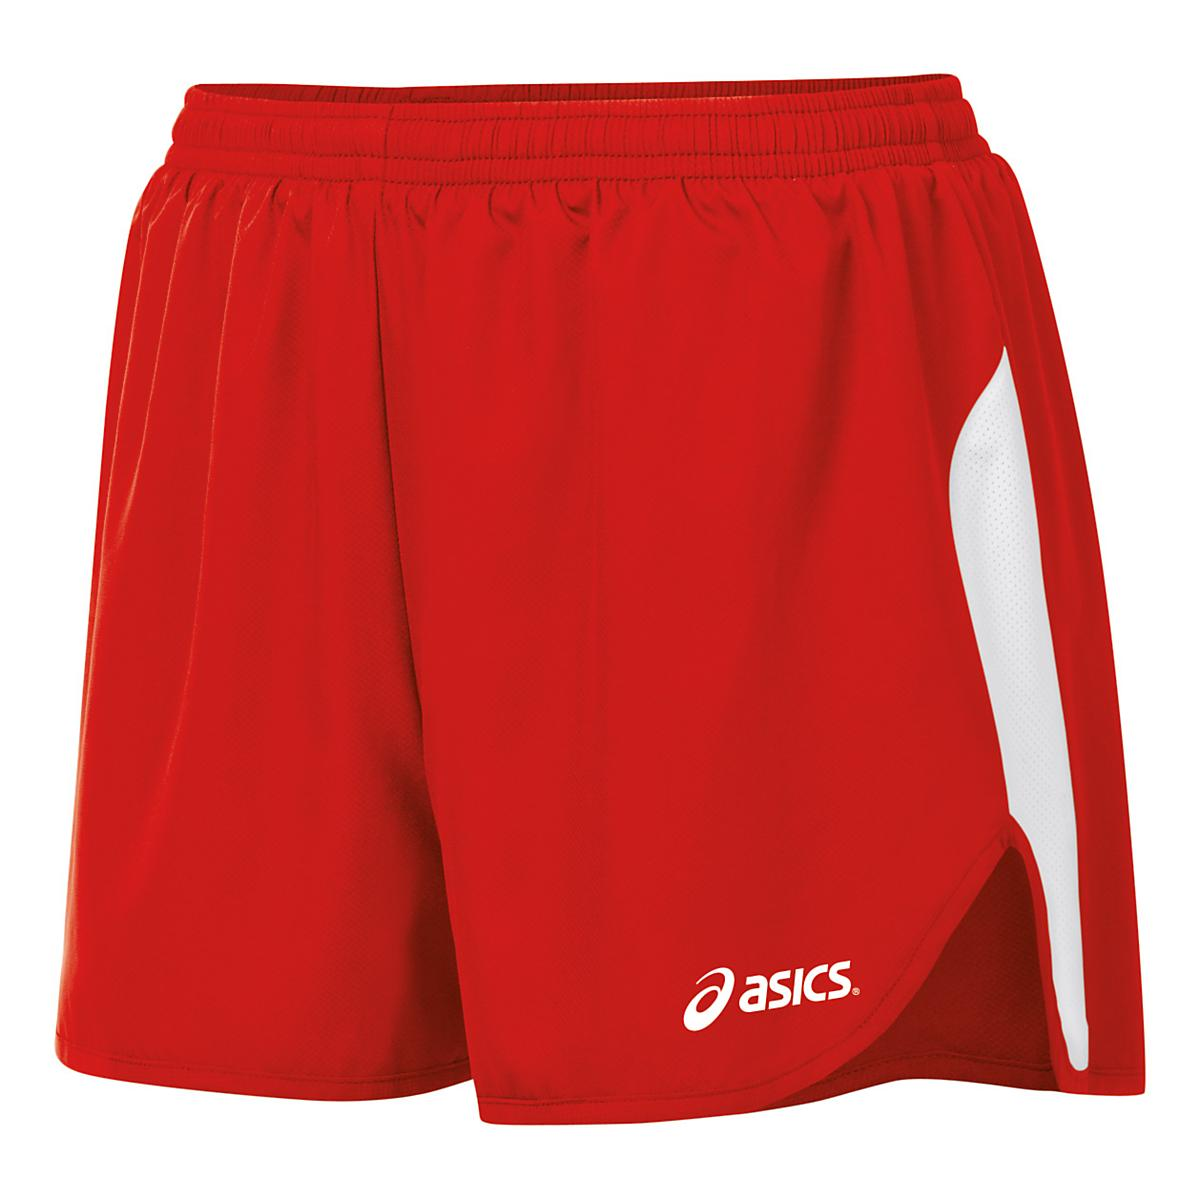 Women's ASICS�Wicked 1/2 Split Short